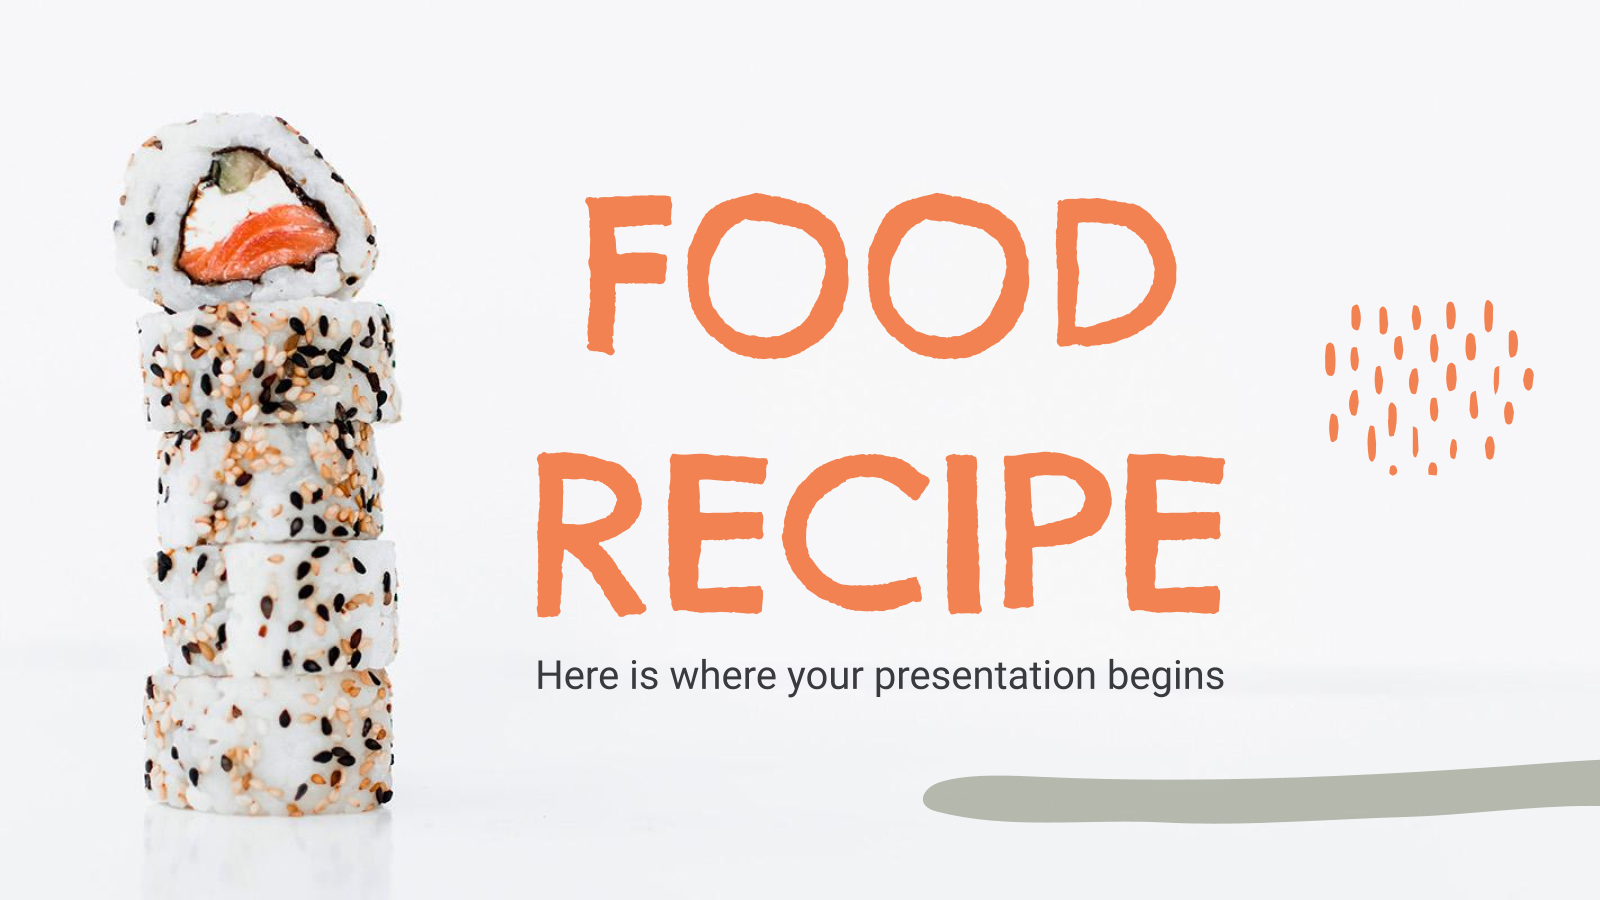 Food Recipe presentation template